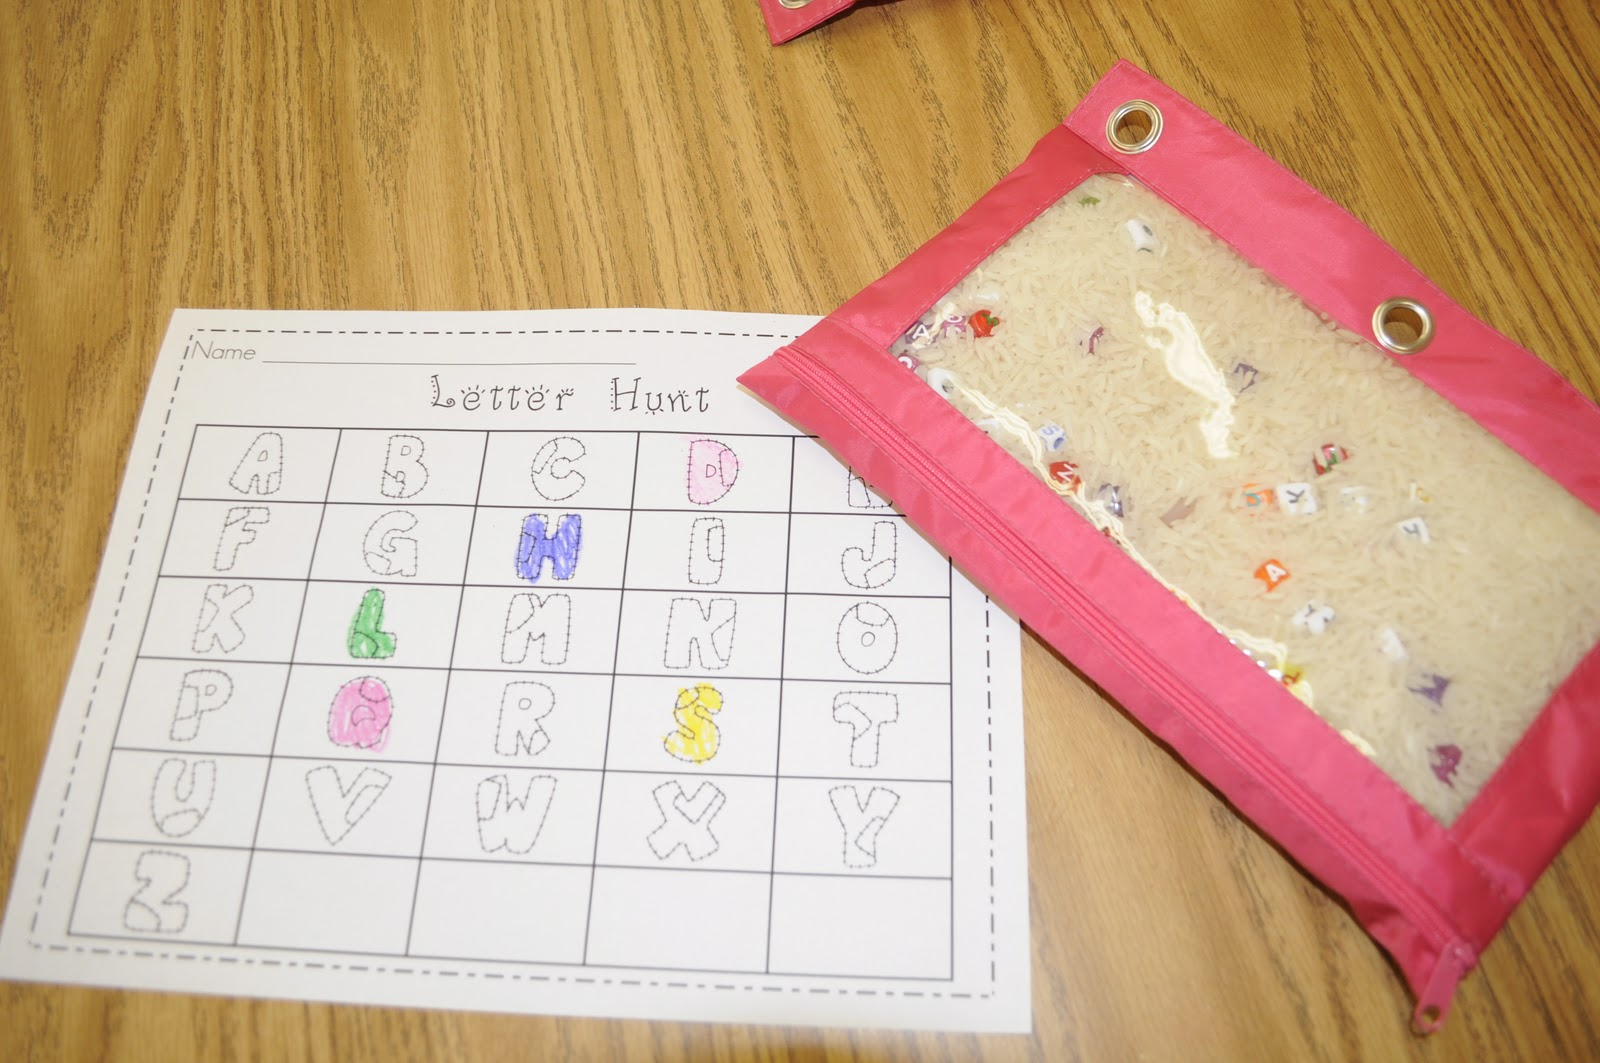 Letter writing service activities for kindergarten